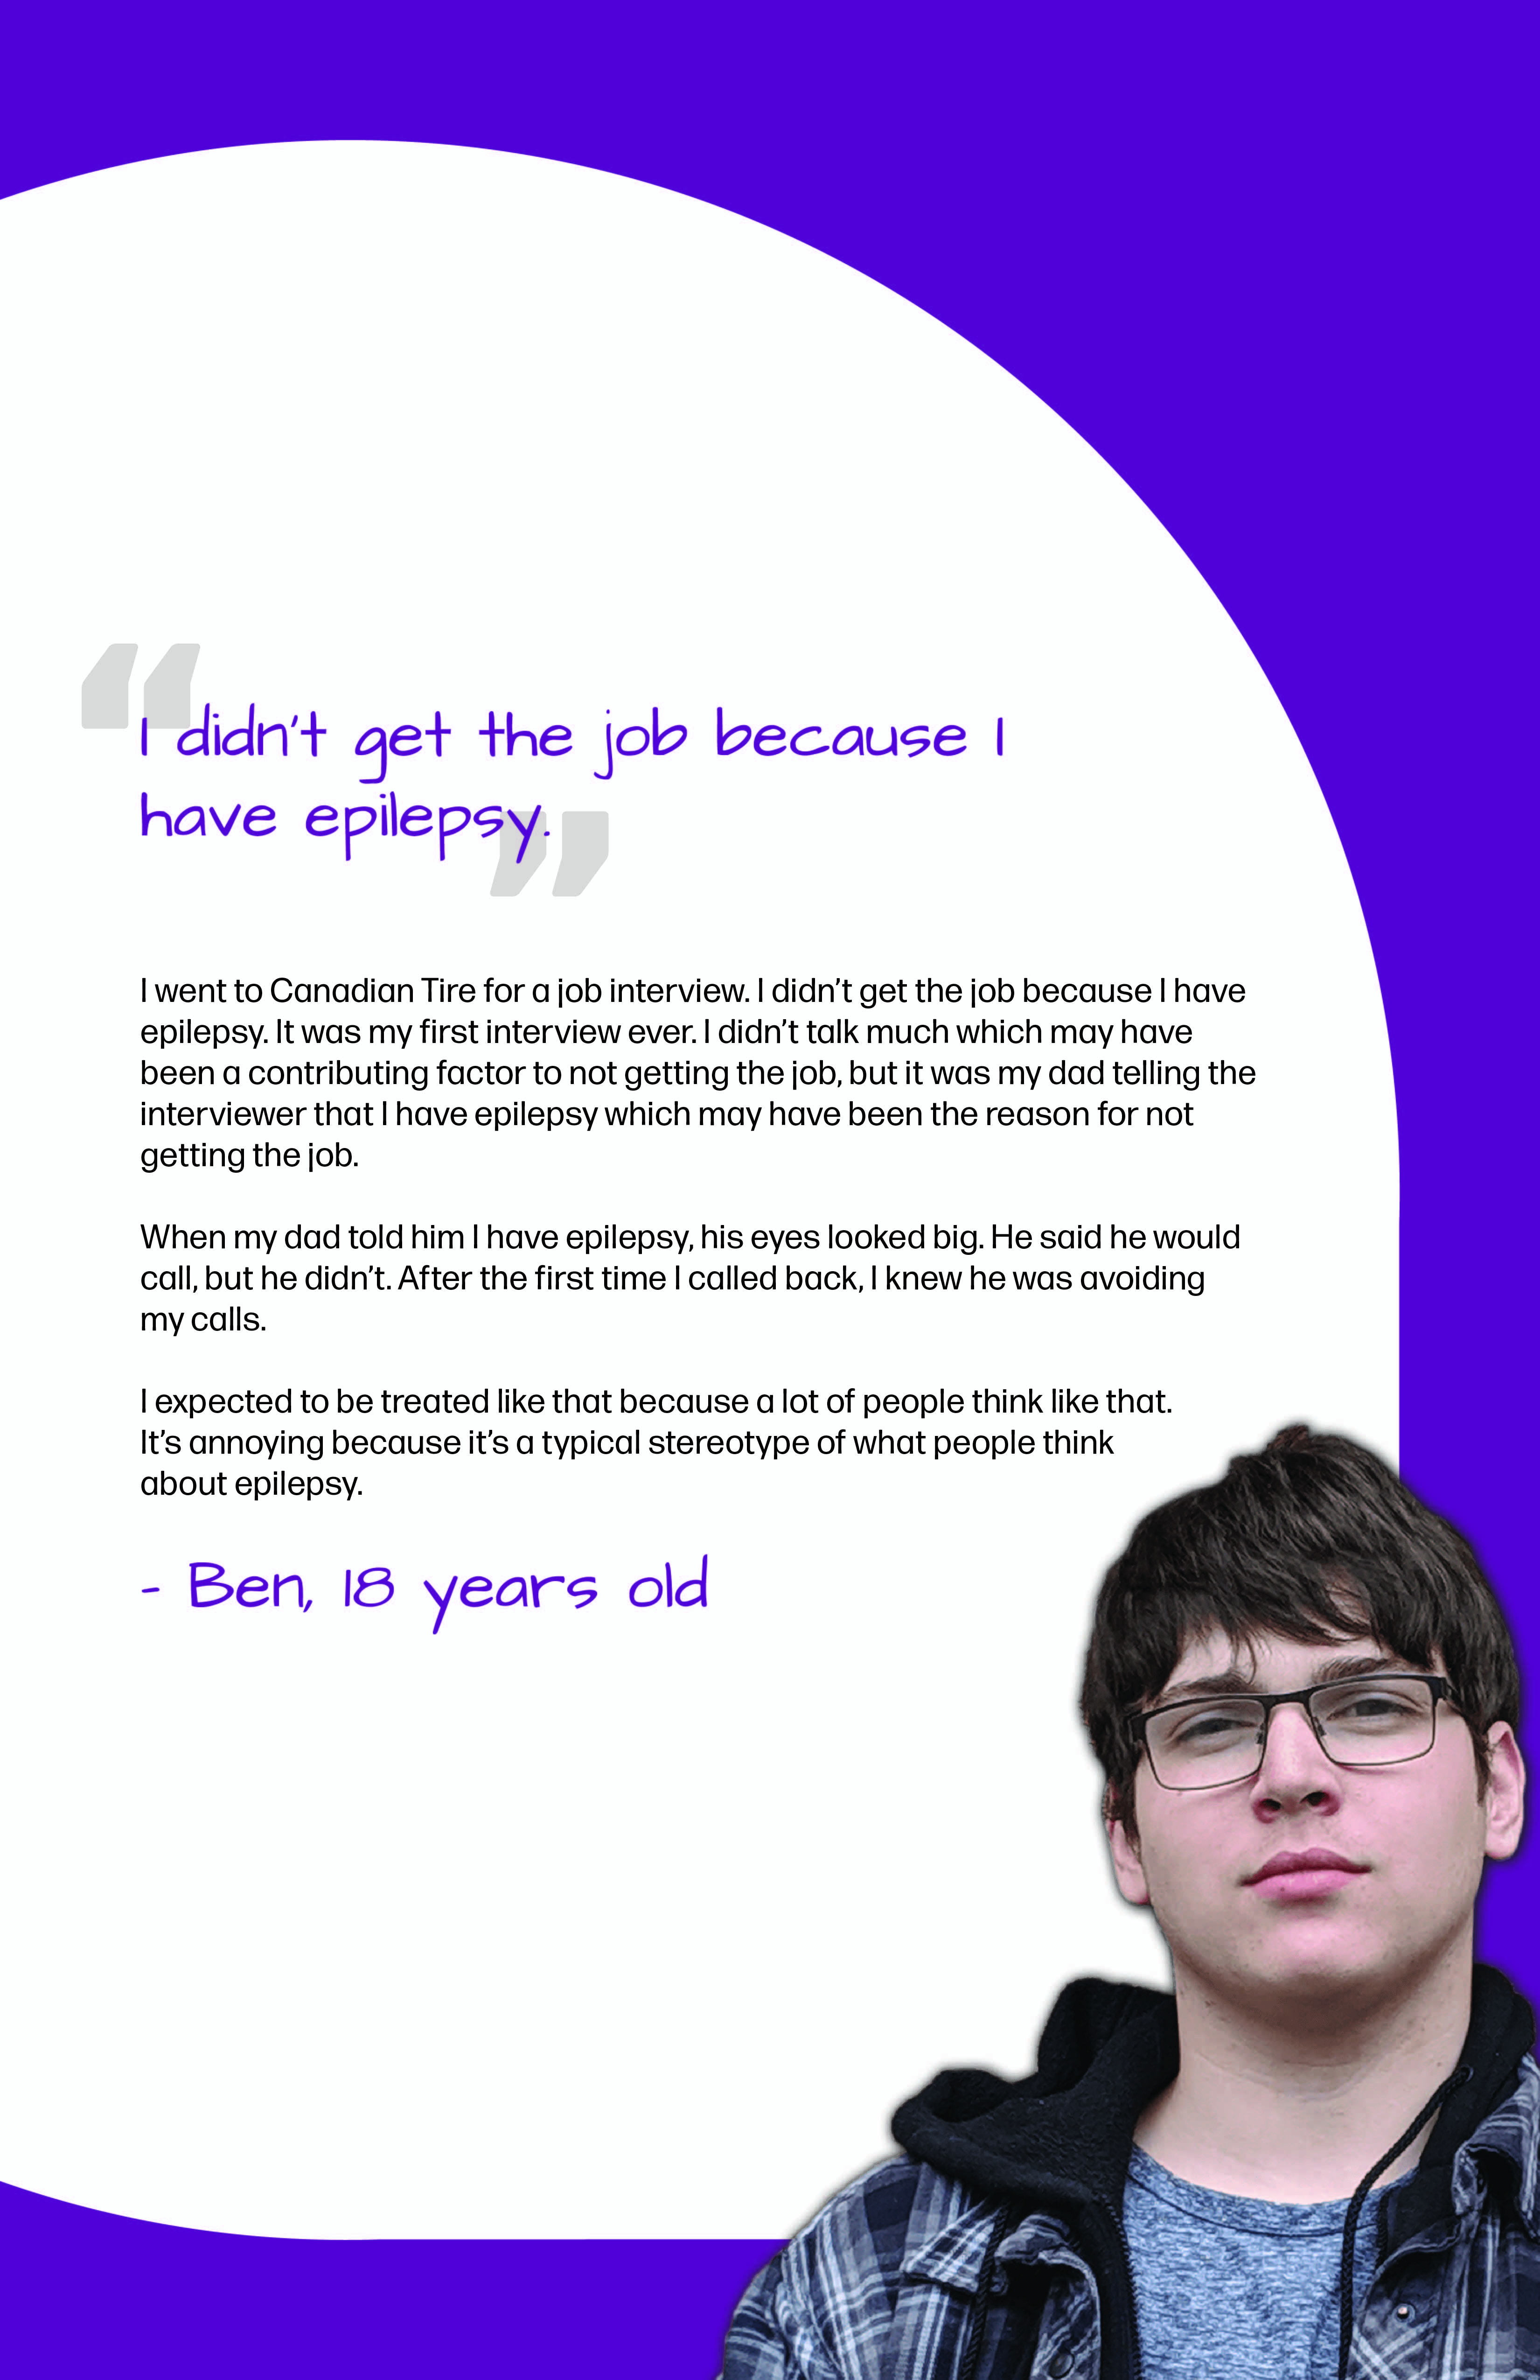 Ben's Epilepsy Perspective Images Club story poster